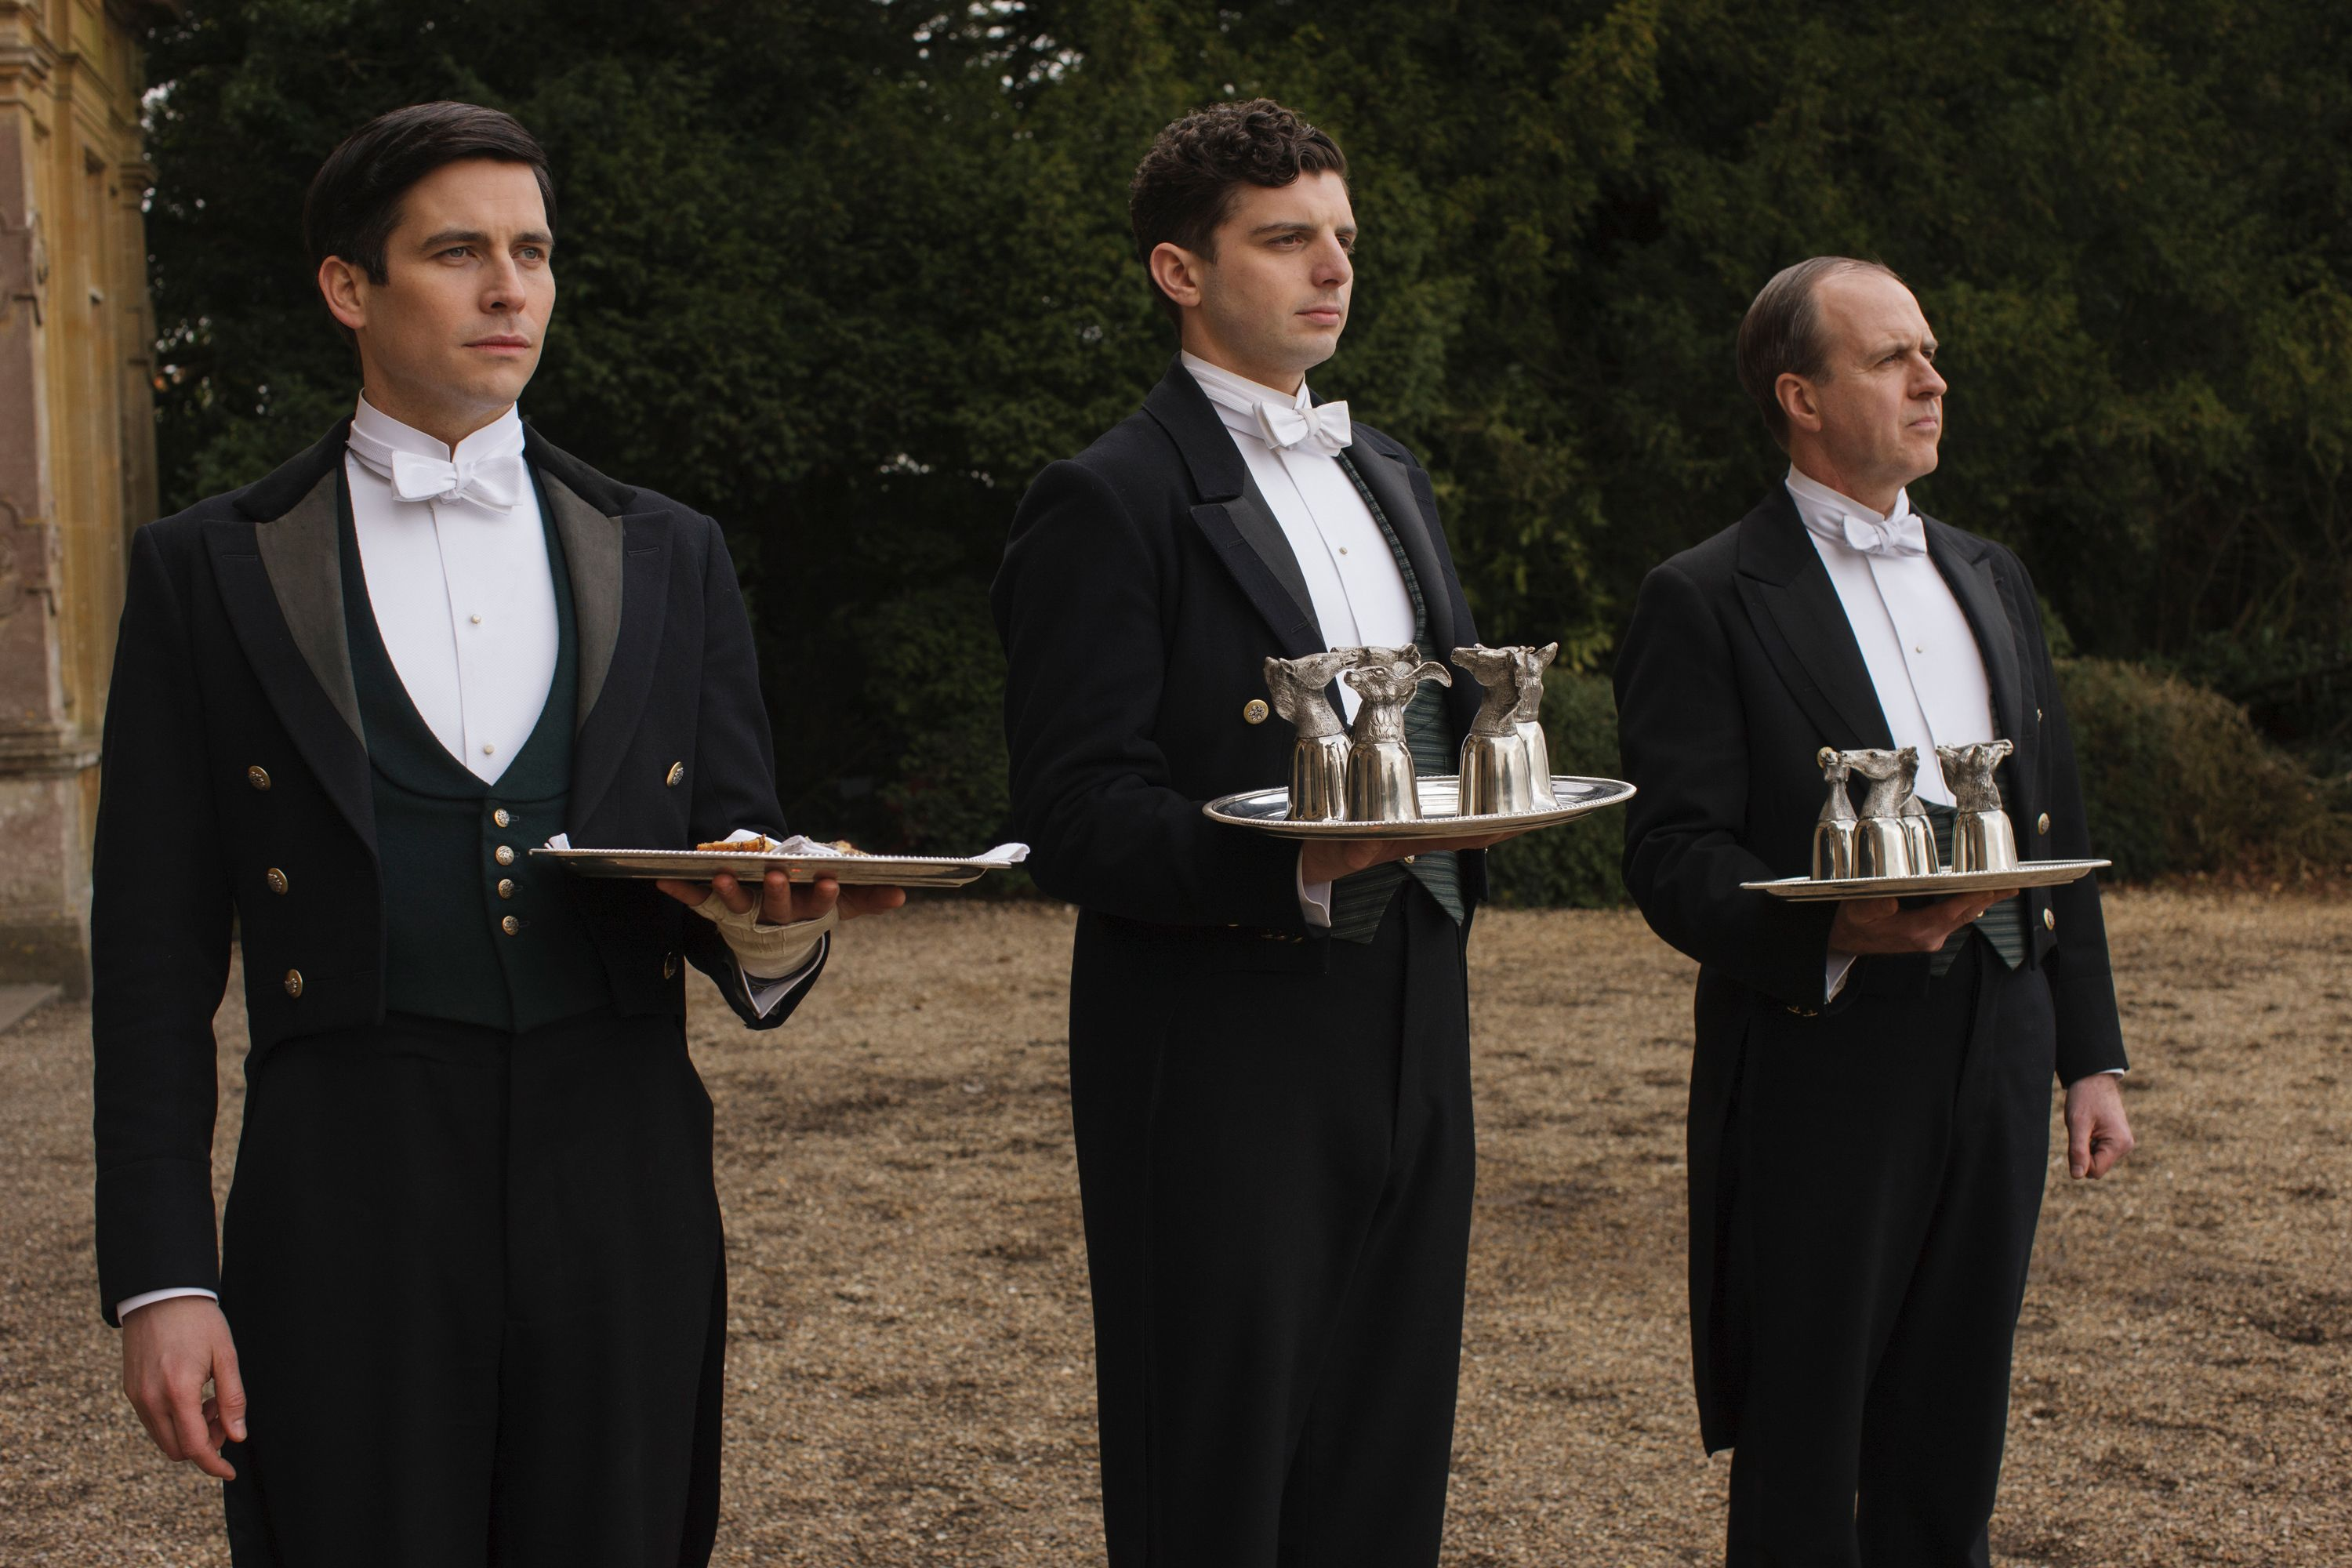 Downton Abbey's Thomas Barrow and the Future of the Gay Past